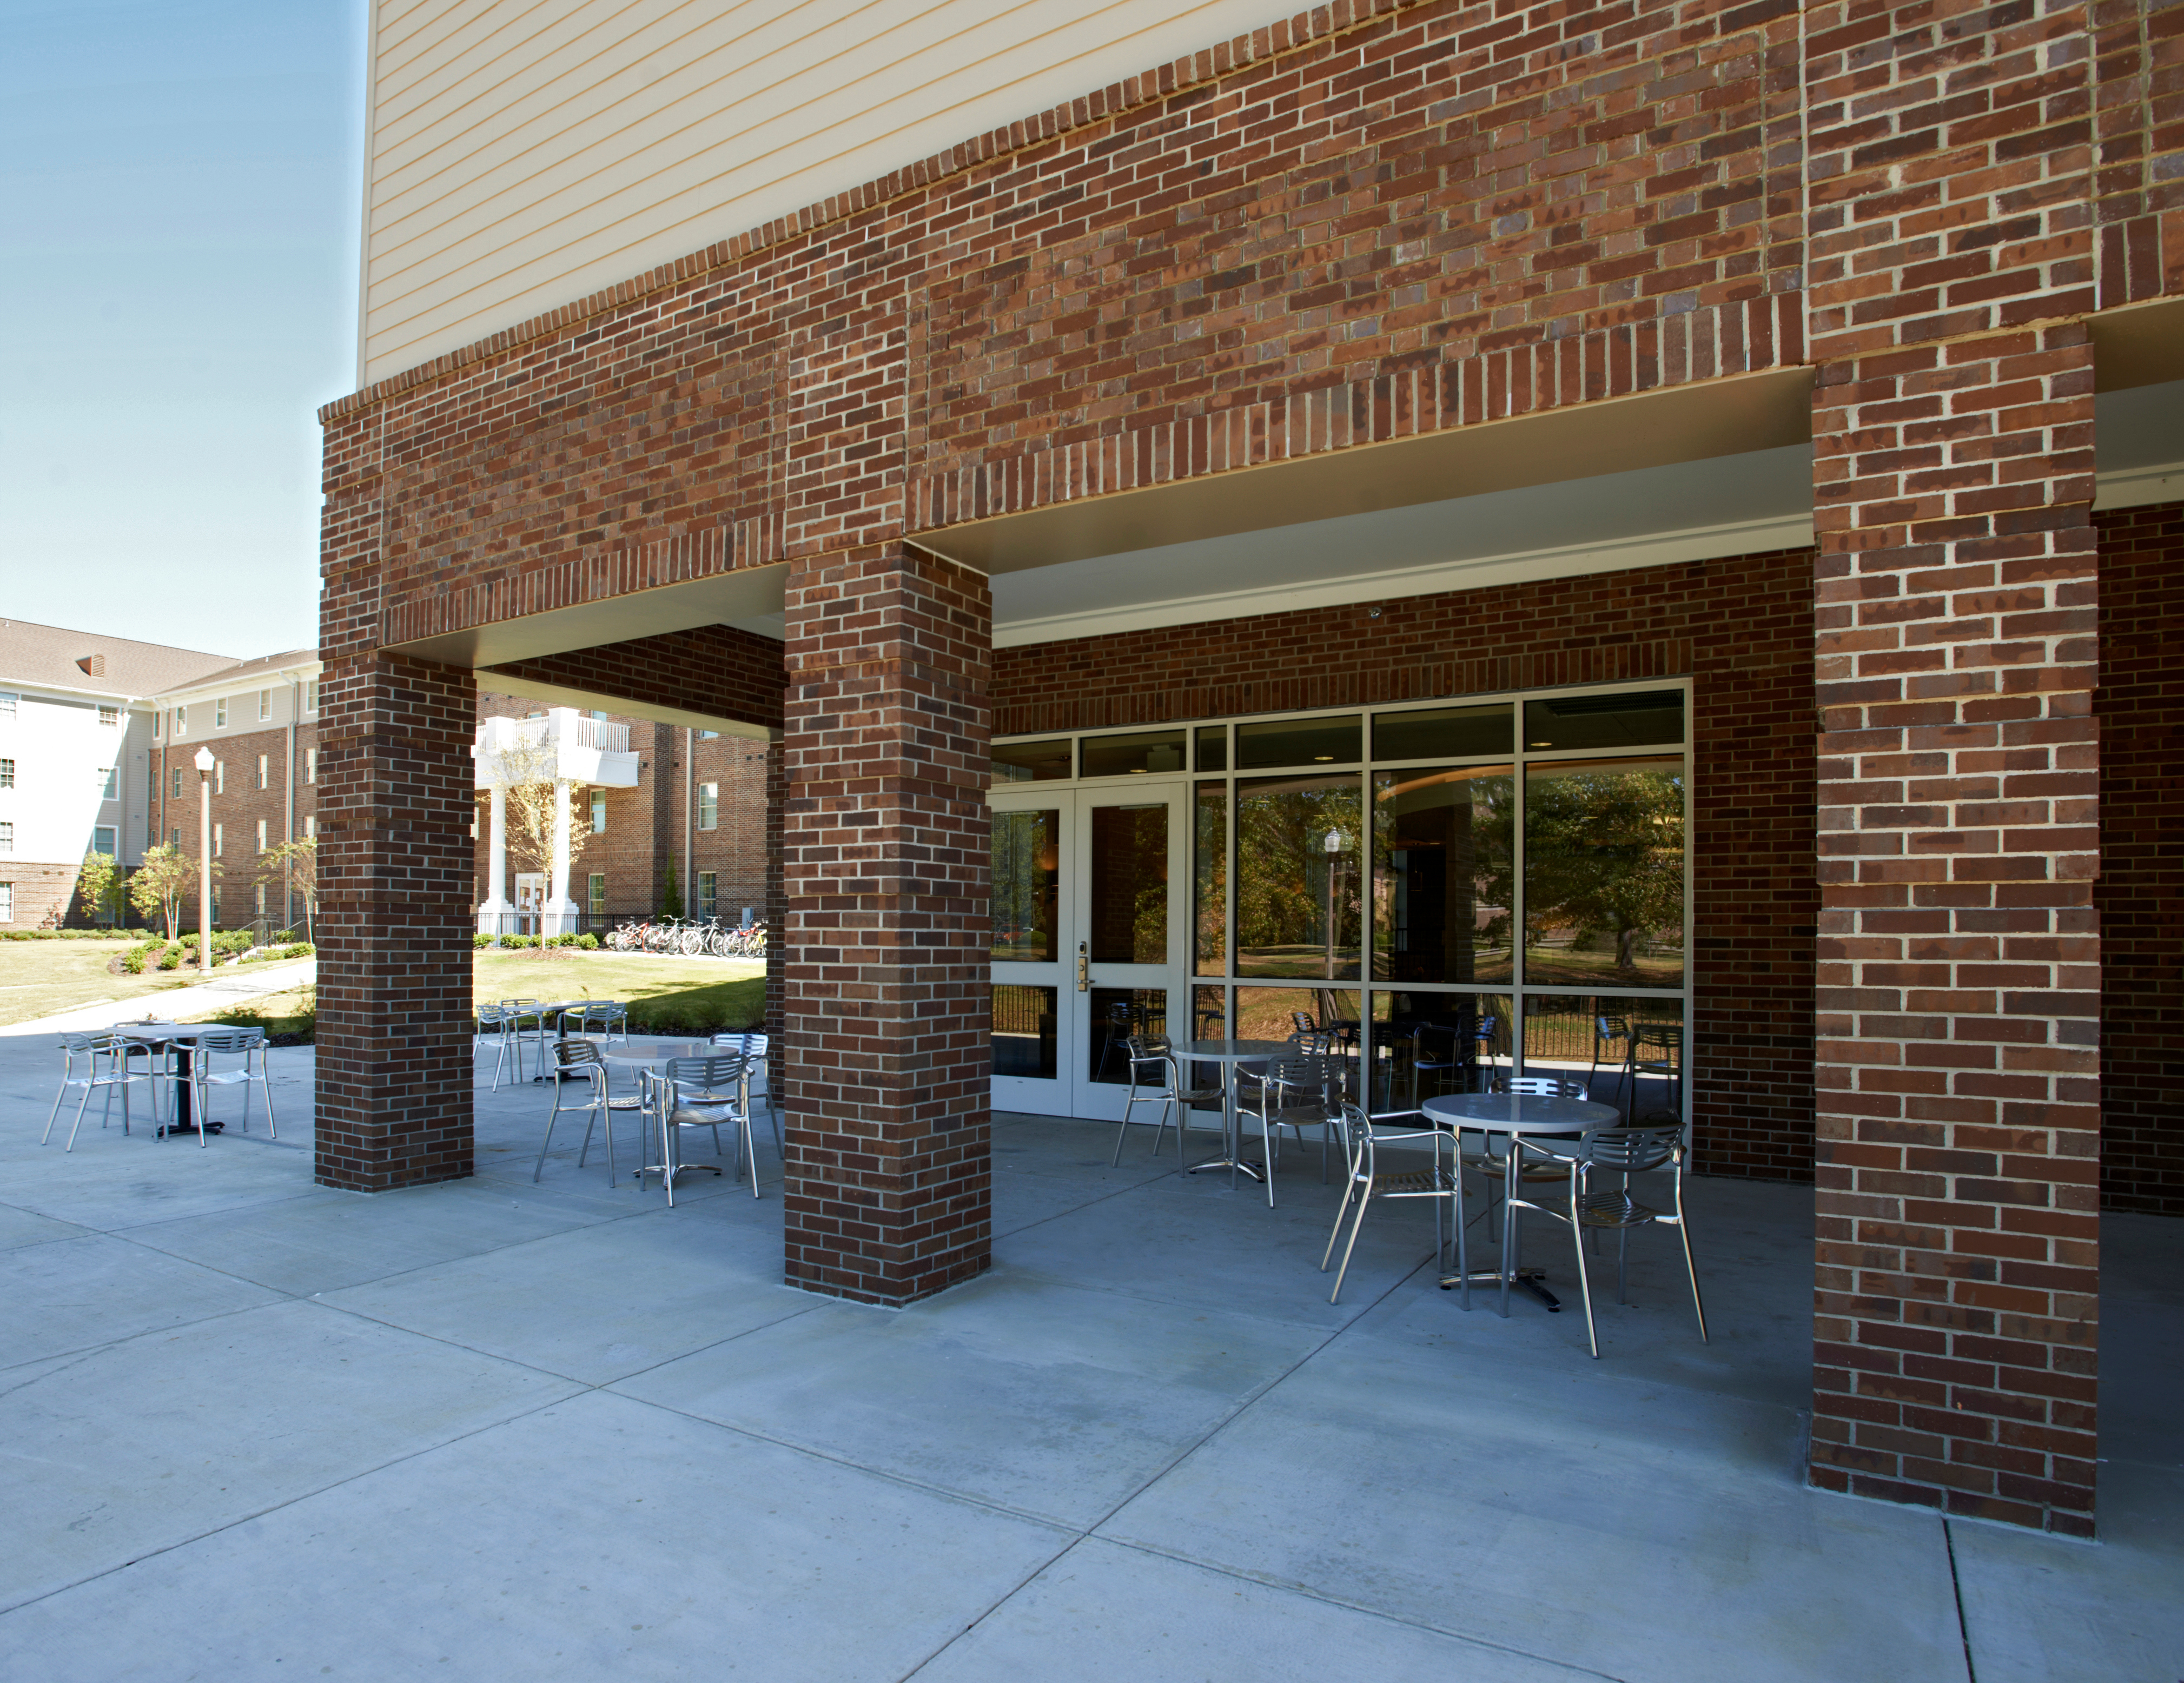 453C-outdoor seating